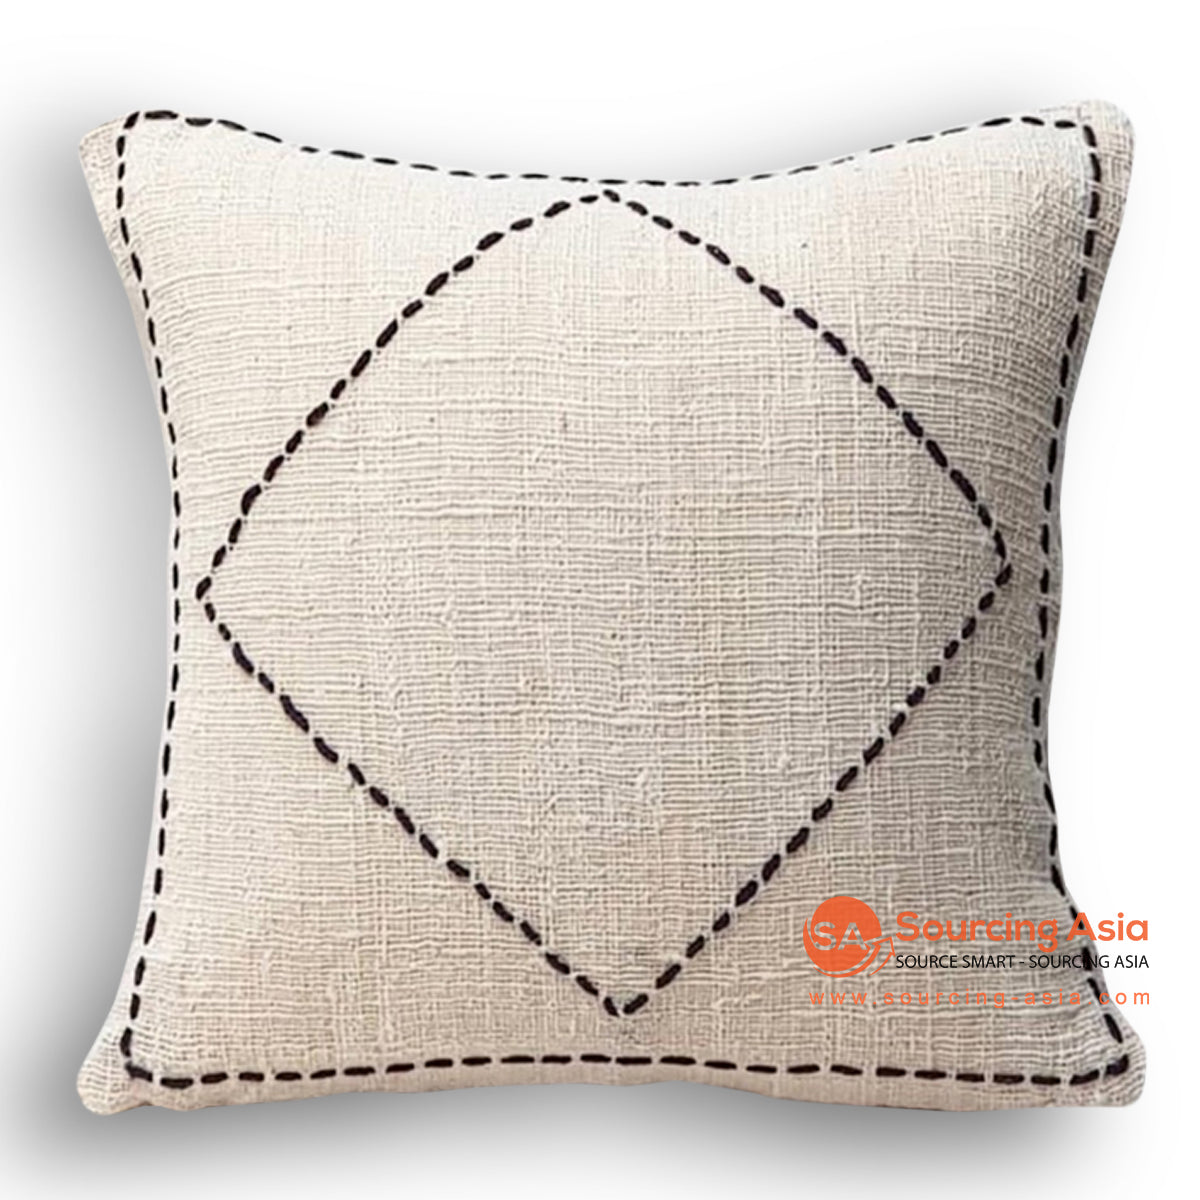 HIP006-1 HAND STITCHED COVER PILLOW 50 X 50 CM